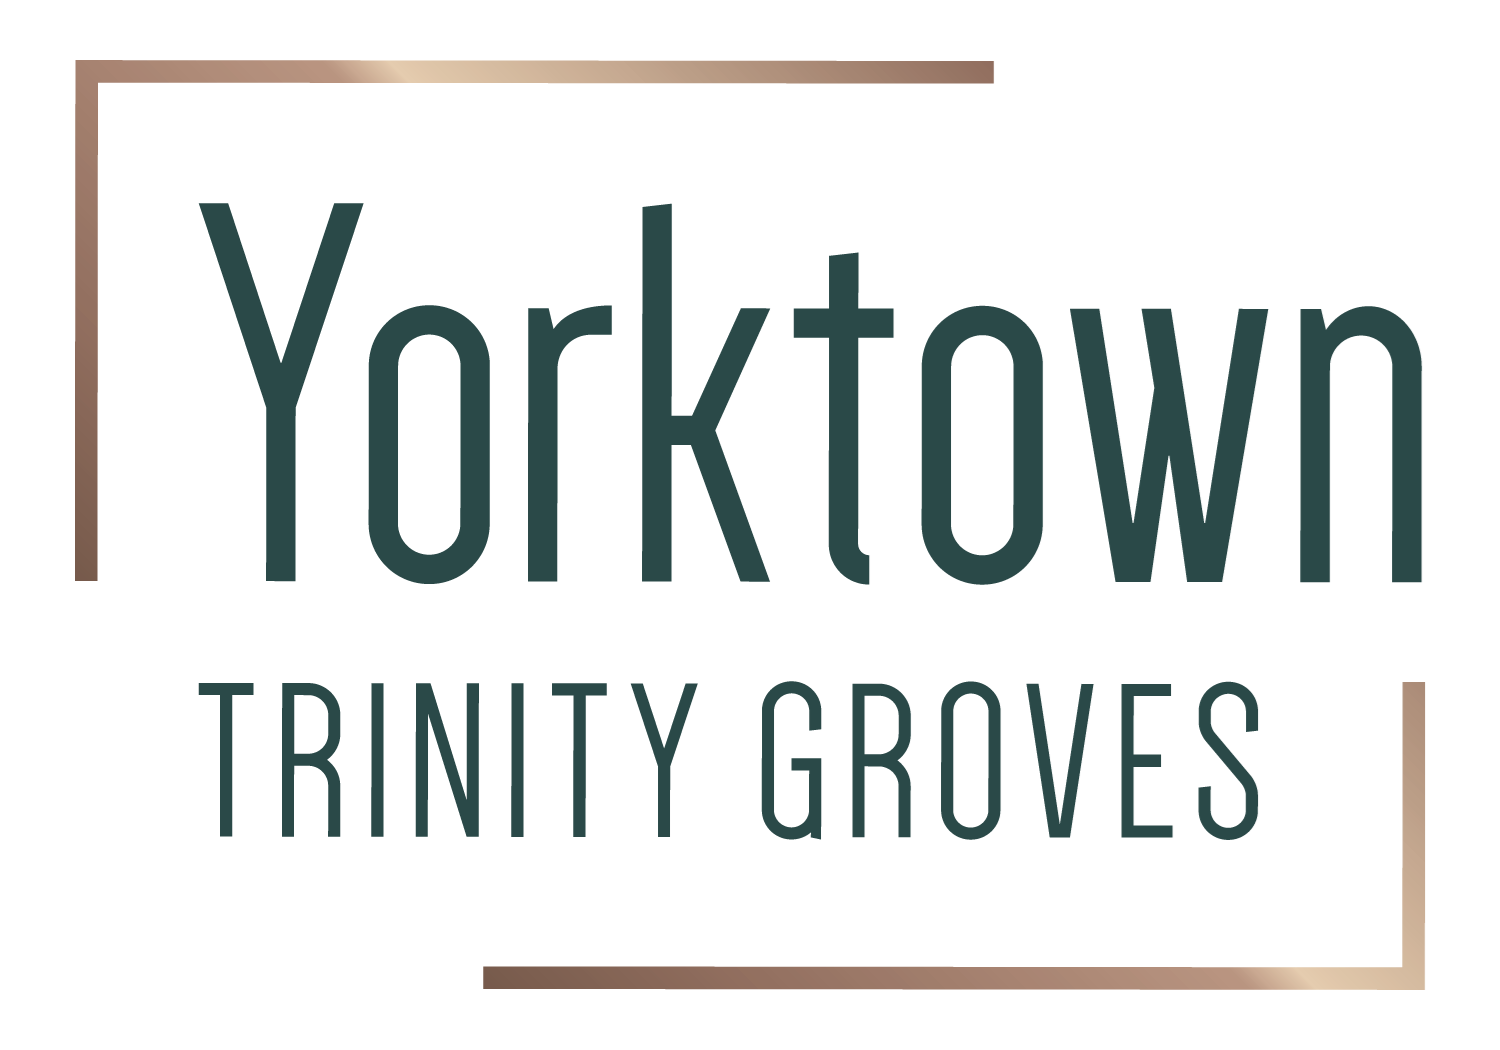 Map Of Yorktown Tx.Map And Directions To Yorktown Trinity Groves In Dallas Tx